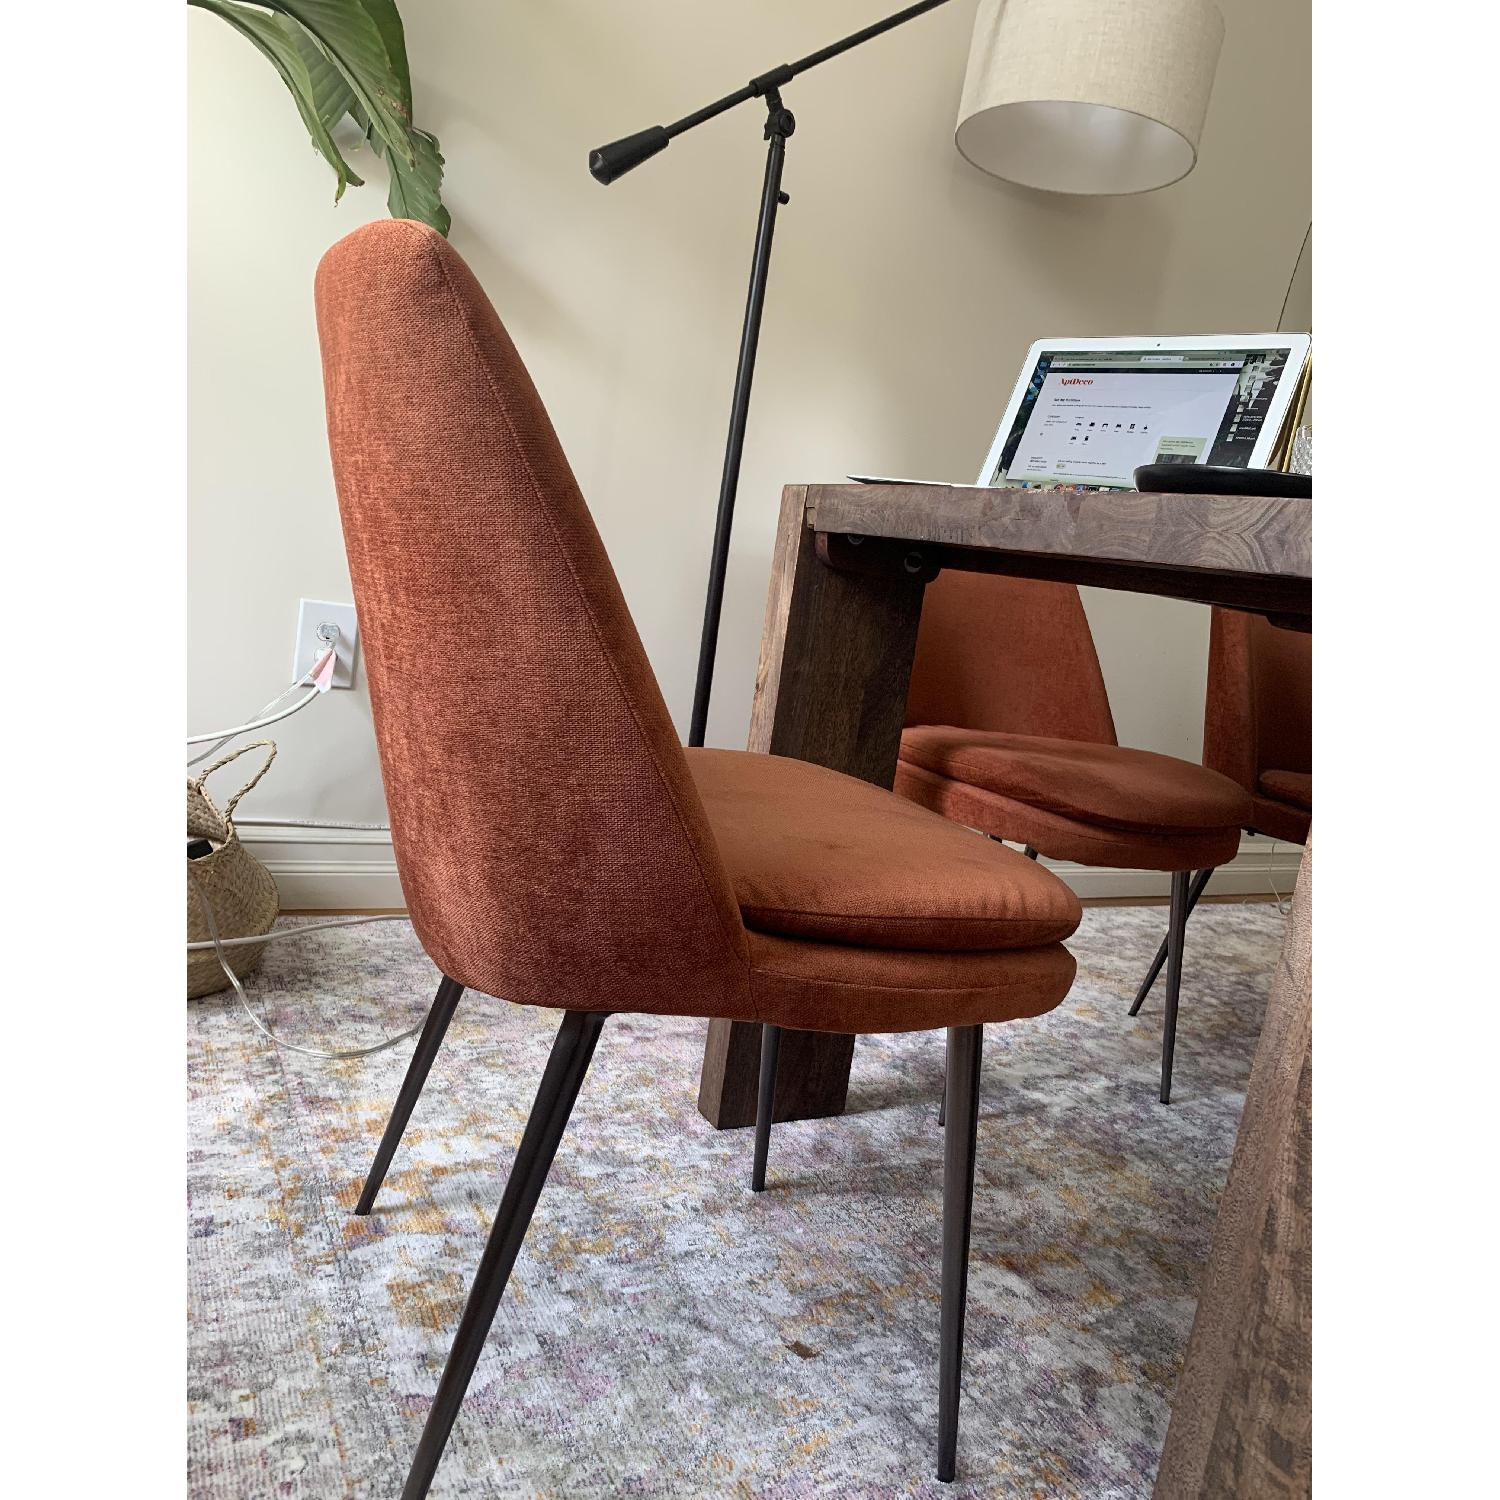 West Elm Distressed Velvet Dining Chairs - image-1